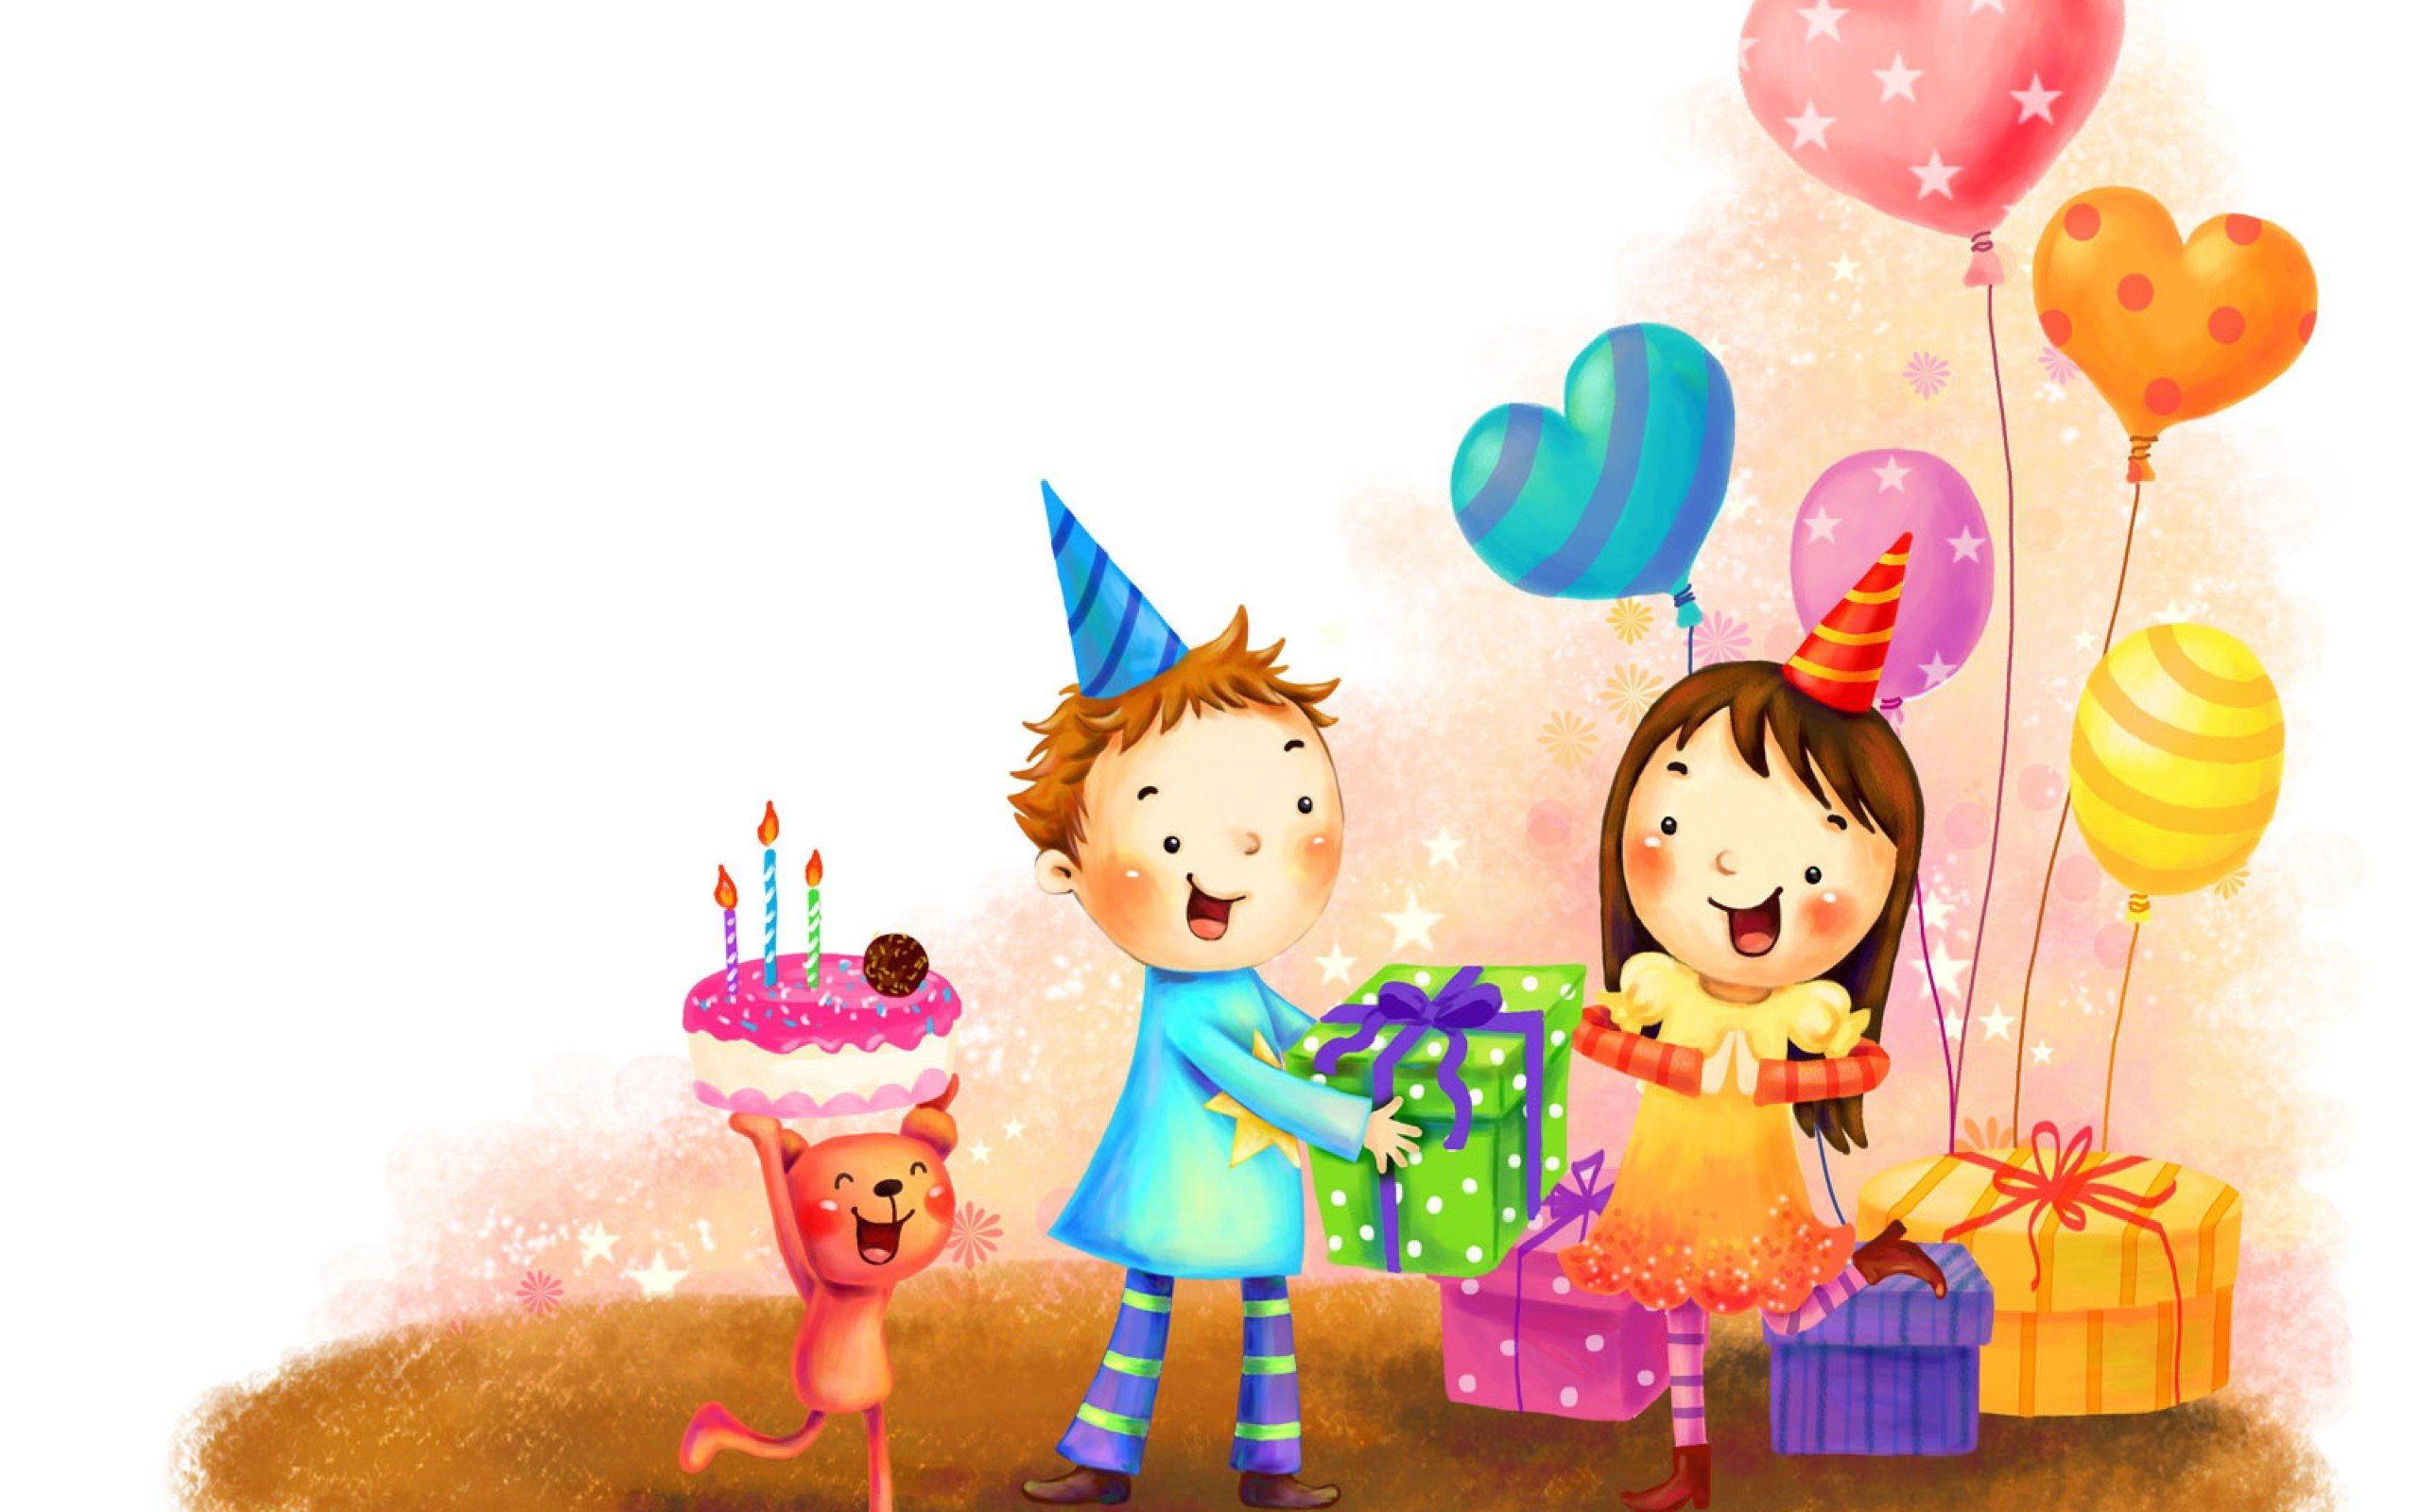 Animated happy birthday gifts image